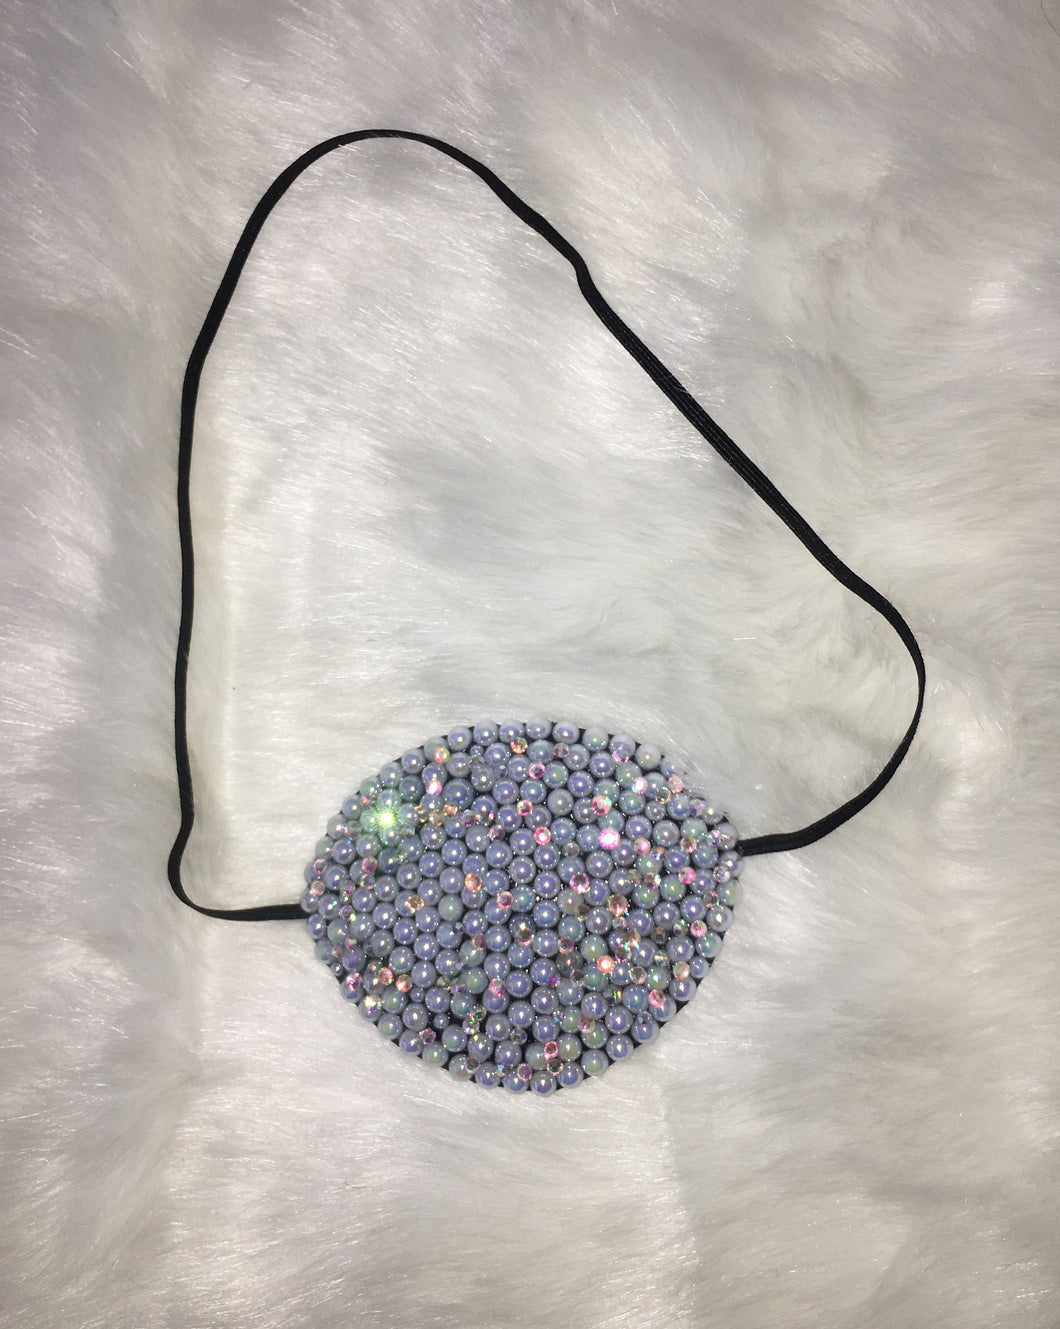 Black Eye Patch Bedazzled In AB Pearls & Crystals